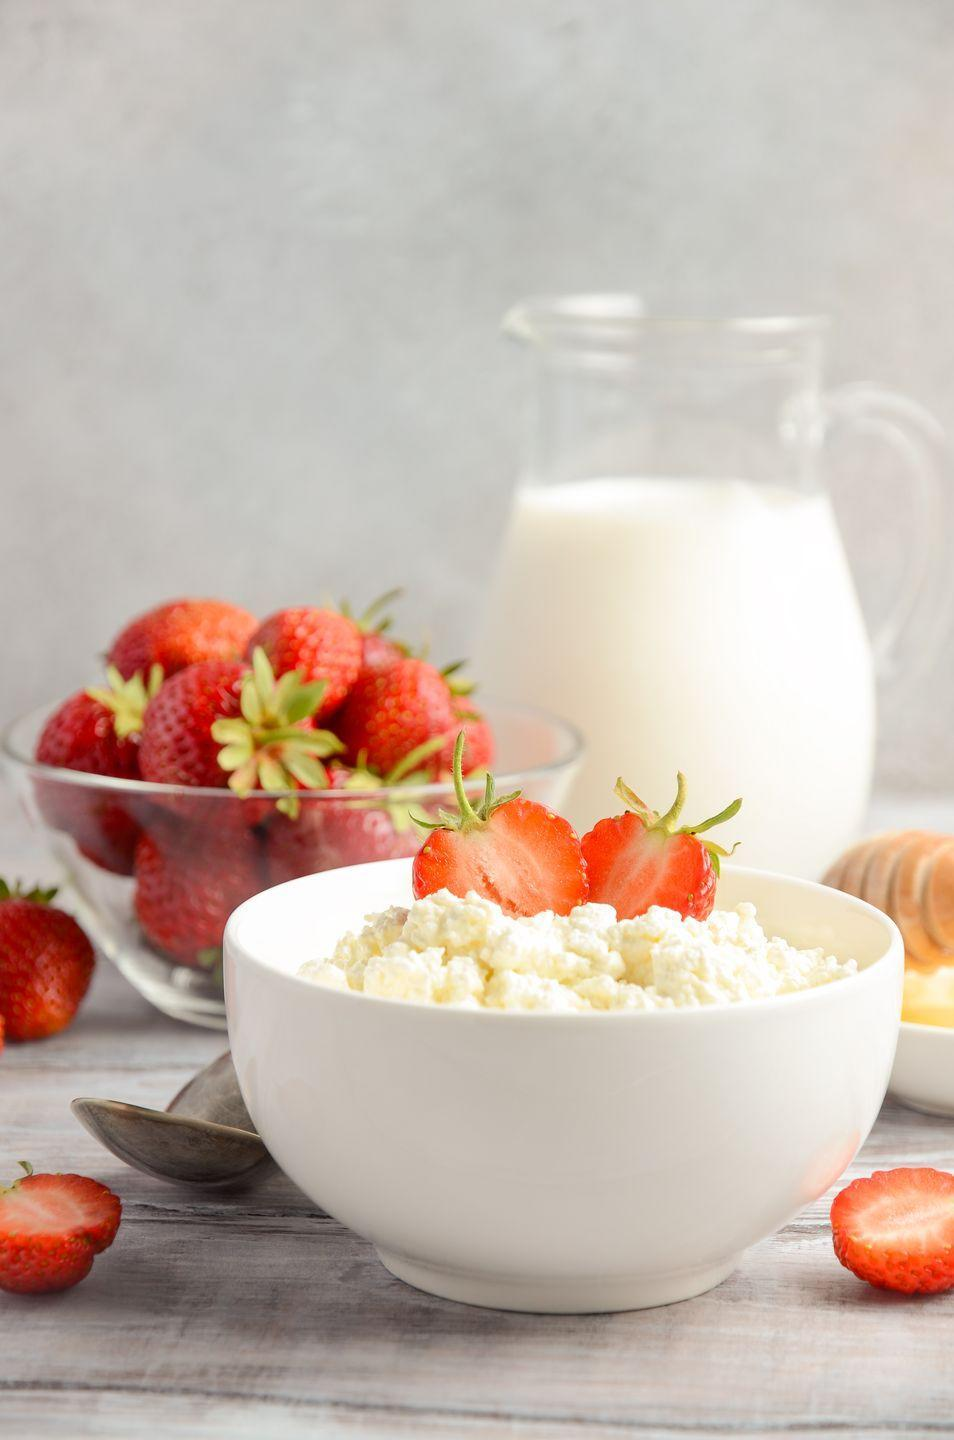 """<p>Just one piece of part-skim mozzarella can add 8 grams of protein (that's the same as one egg!) to your breakfast. A half cup of lower-sodium cottage cheese can pack up to <em>20 grams</em>. Dairy also provides calcium, magnesium, and potassium that'll aid in <a href=""""https://www.goodhousekeeping.com/health/diet-nutrition/a20707480/natural-diuretics/"""" rel=""""nofollow noopener"""" target=""""_blank"""" data-ylk=""""slk:reducing bloat"""" class=""""link rapid-noclick-resp"""">reducing bloat</a>, balancing blood pressure, and helping you stay energized. Use around 1⁄3 cup of cheese as the main source of protein in the meal; use 1⁄4 cup if it's for adding flavor (e.g., an omelet).</p>"""